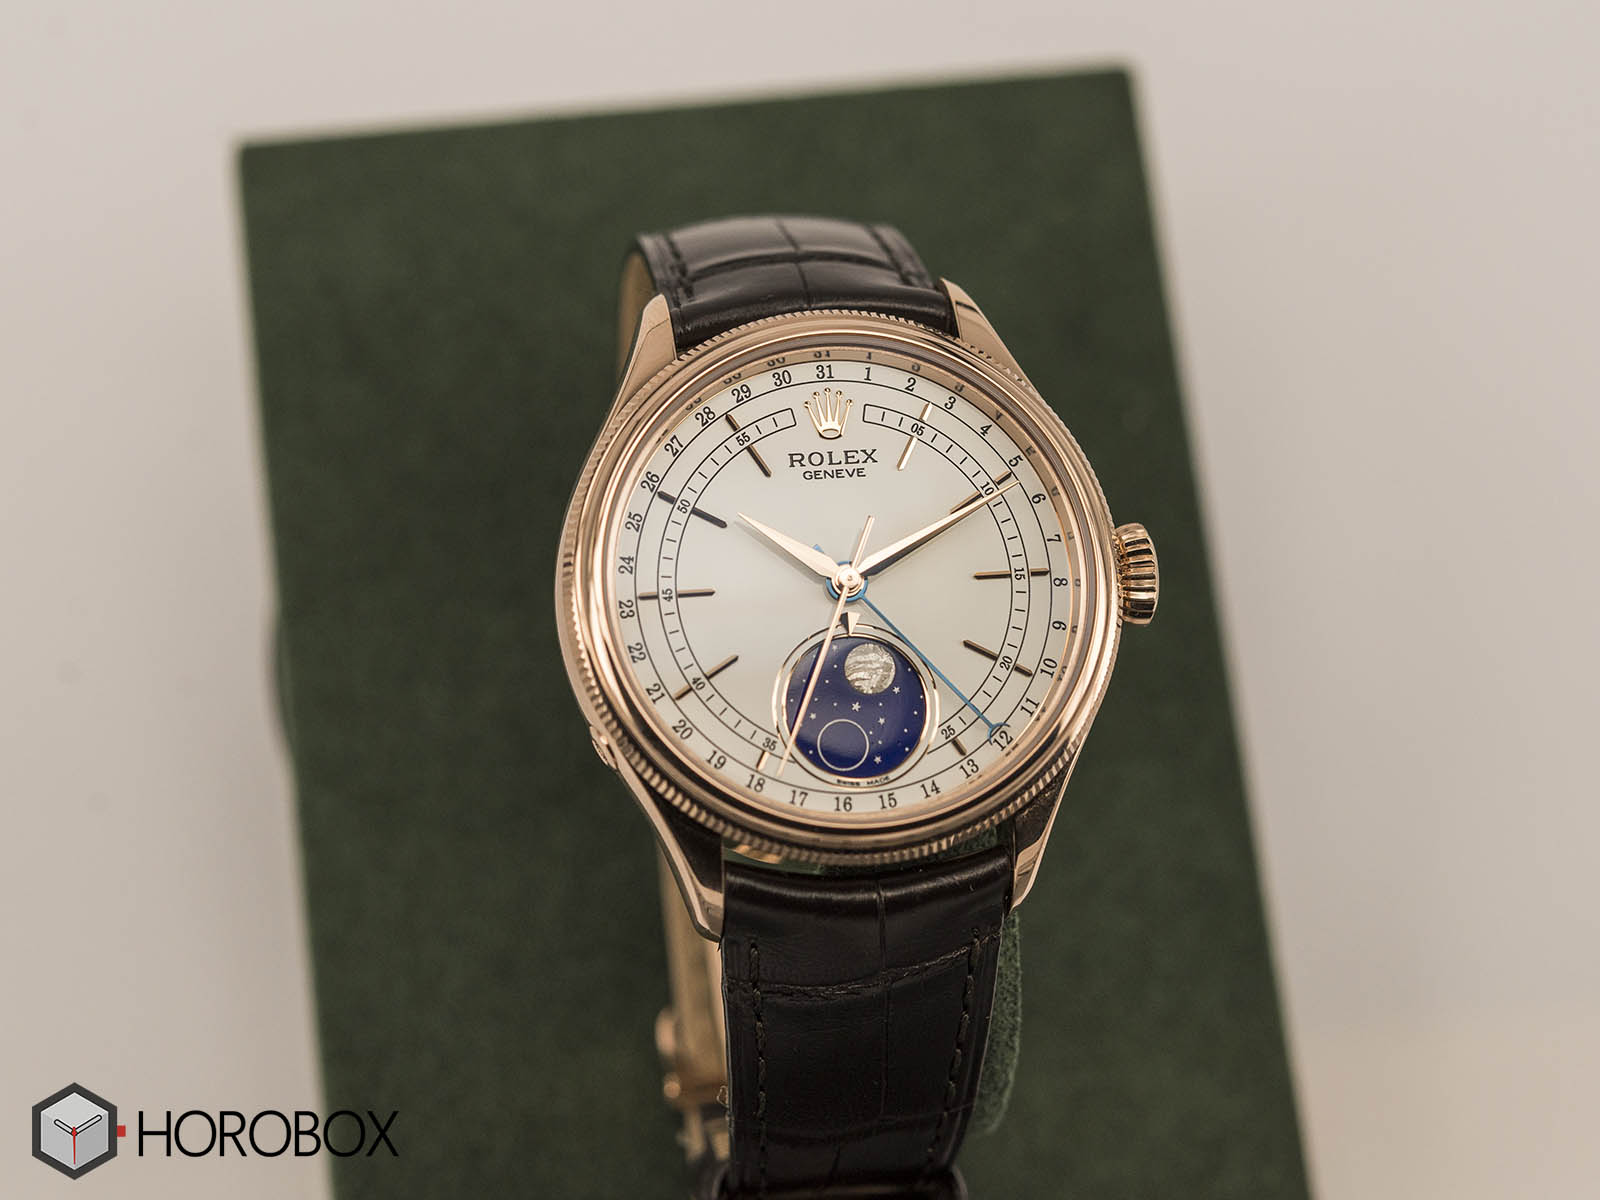 Rolex-Celline-Baselworld-2017.jpg